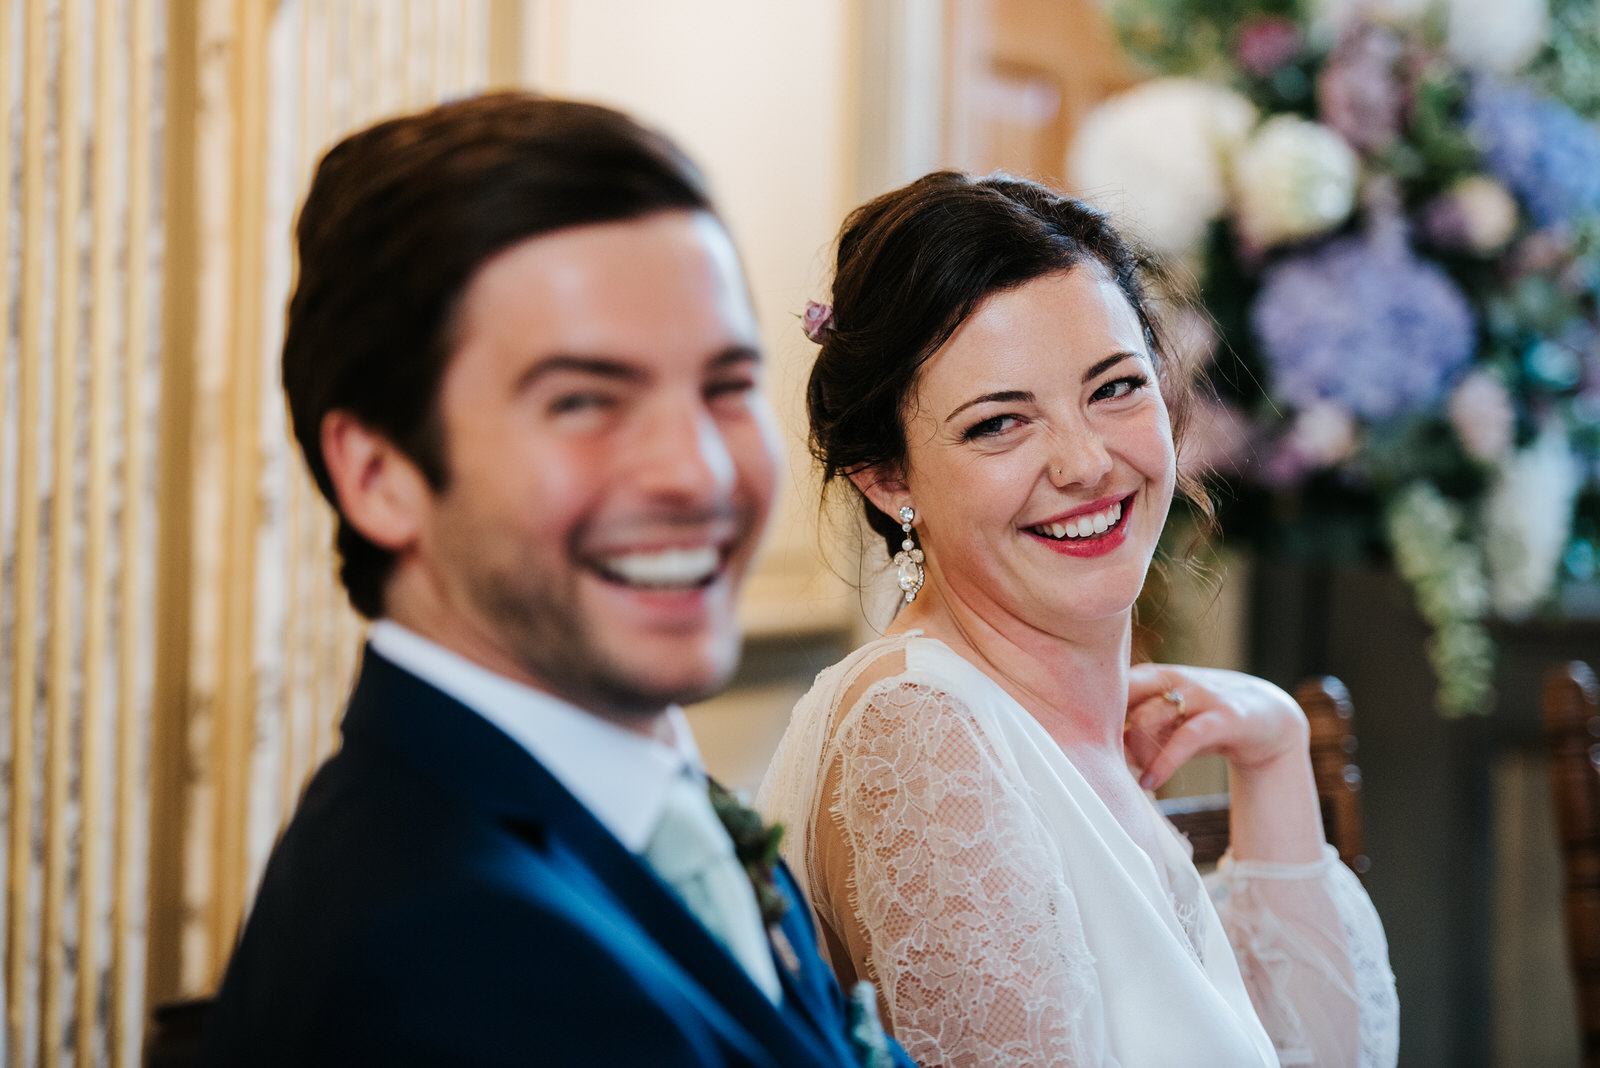 Groom and bride smile with teeth and look into camera